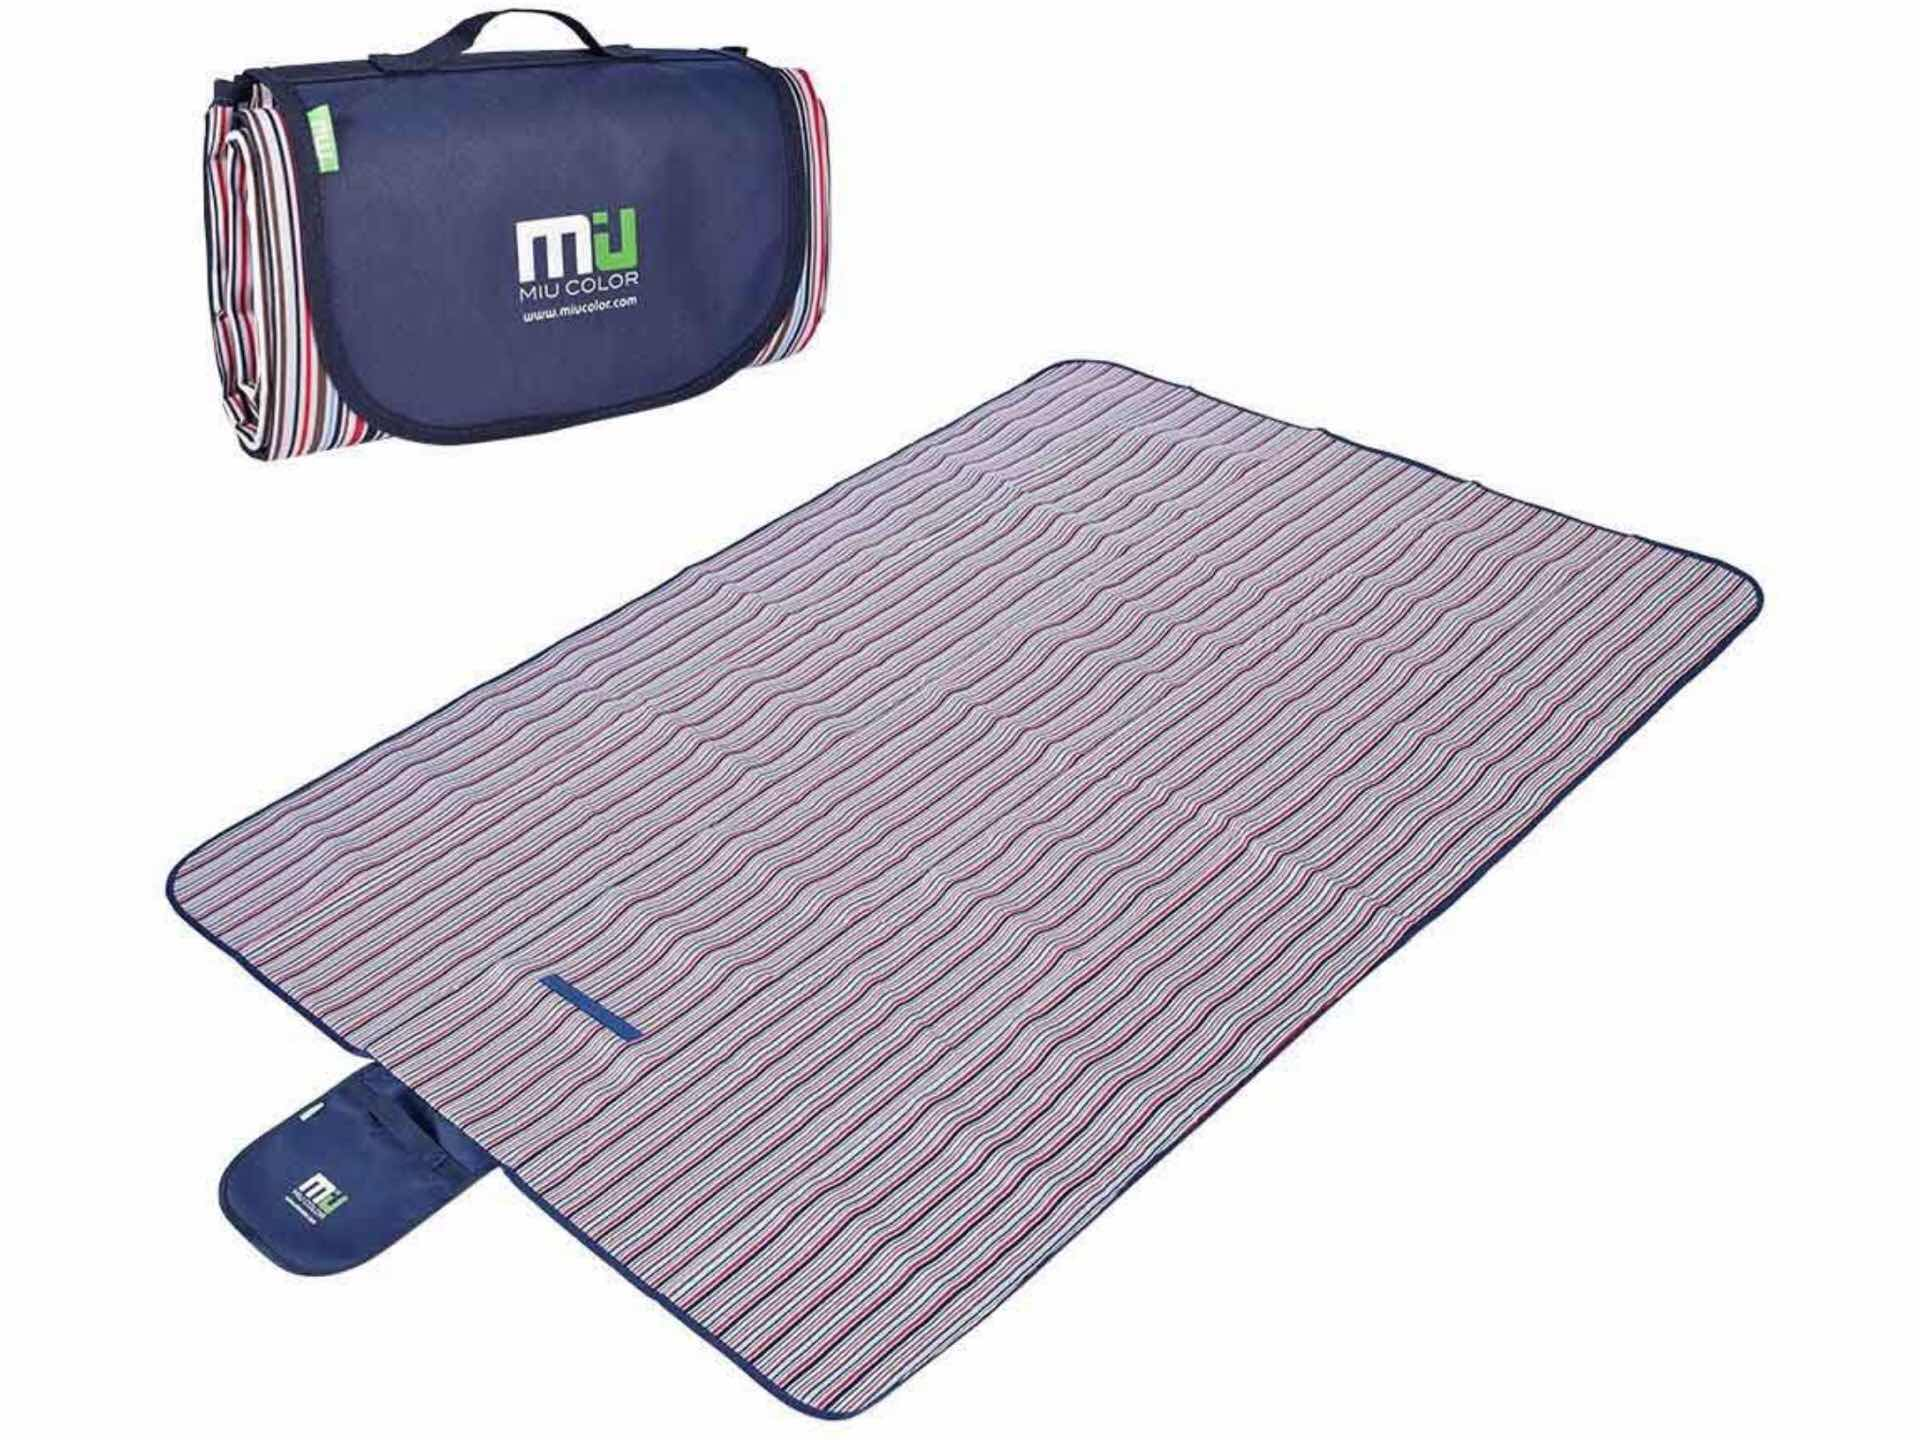 miu-color-large-picnic-blanket